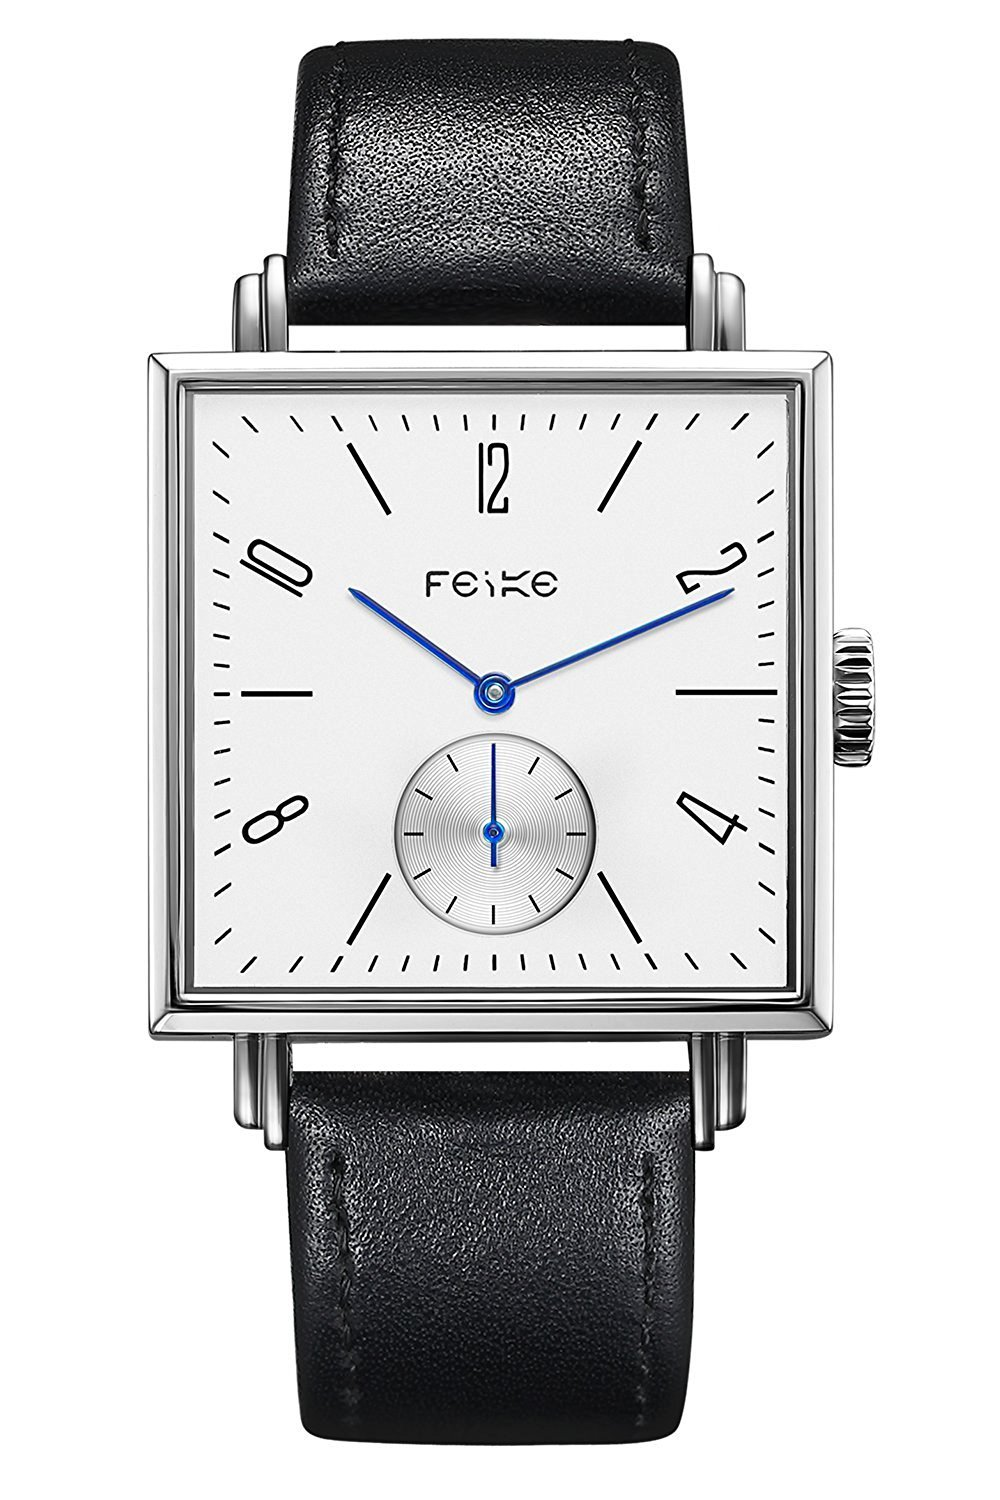 FEICE Automatic Mechanical Men's Watch Square Wrist Watch for men Stainless Steel Leather Watch Bands Casual Simple Business Unique Watch Best Gift #FM301(Black)